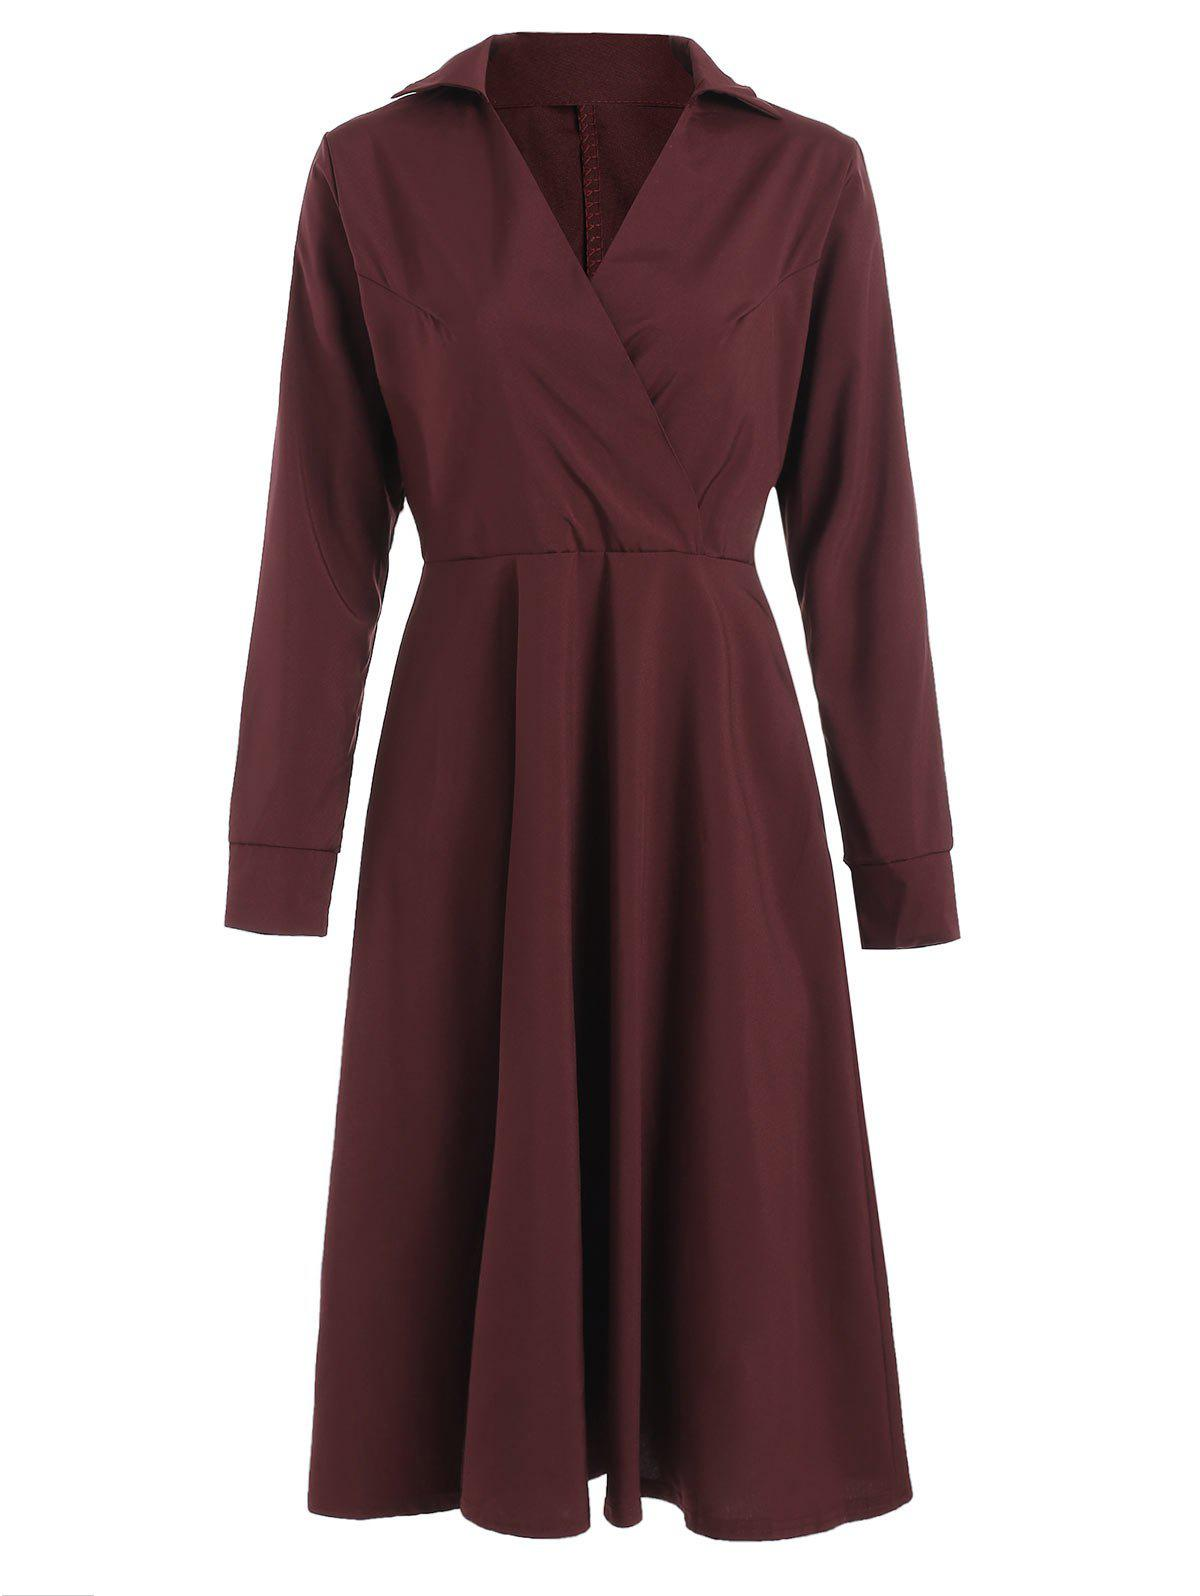 Discount Surplice A Line Shirt Dress